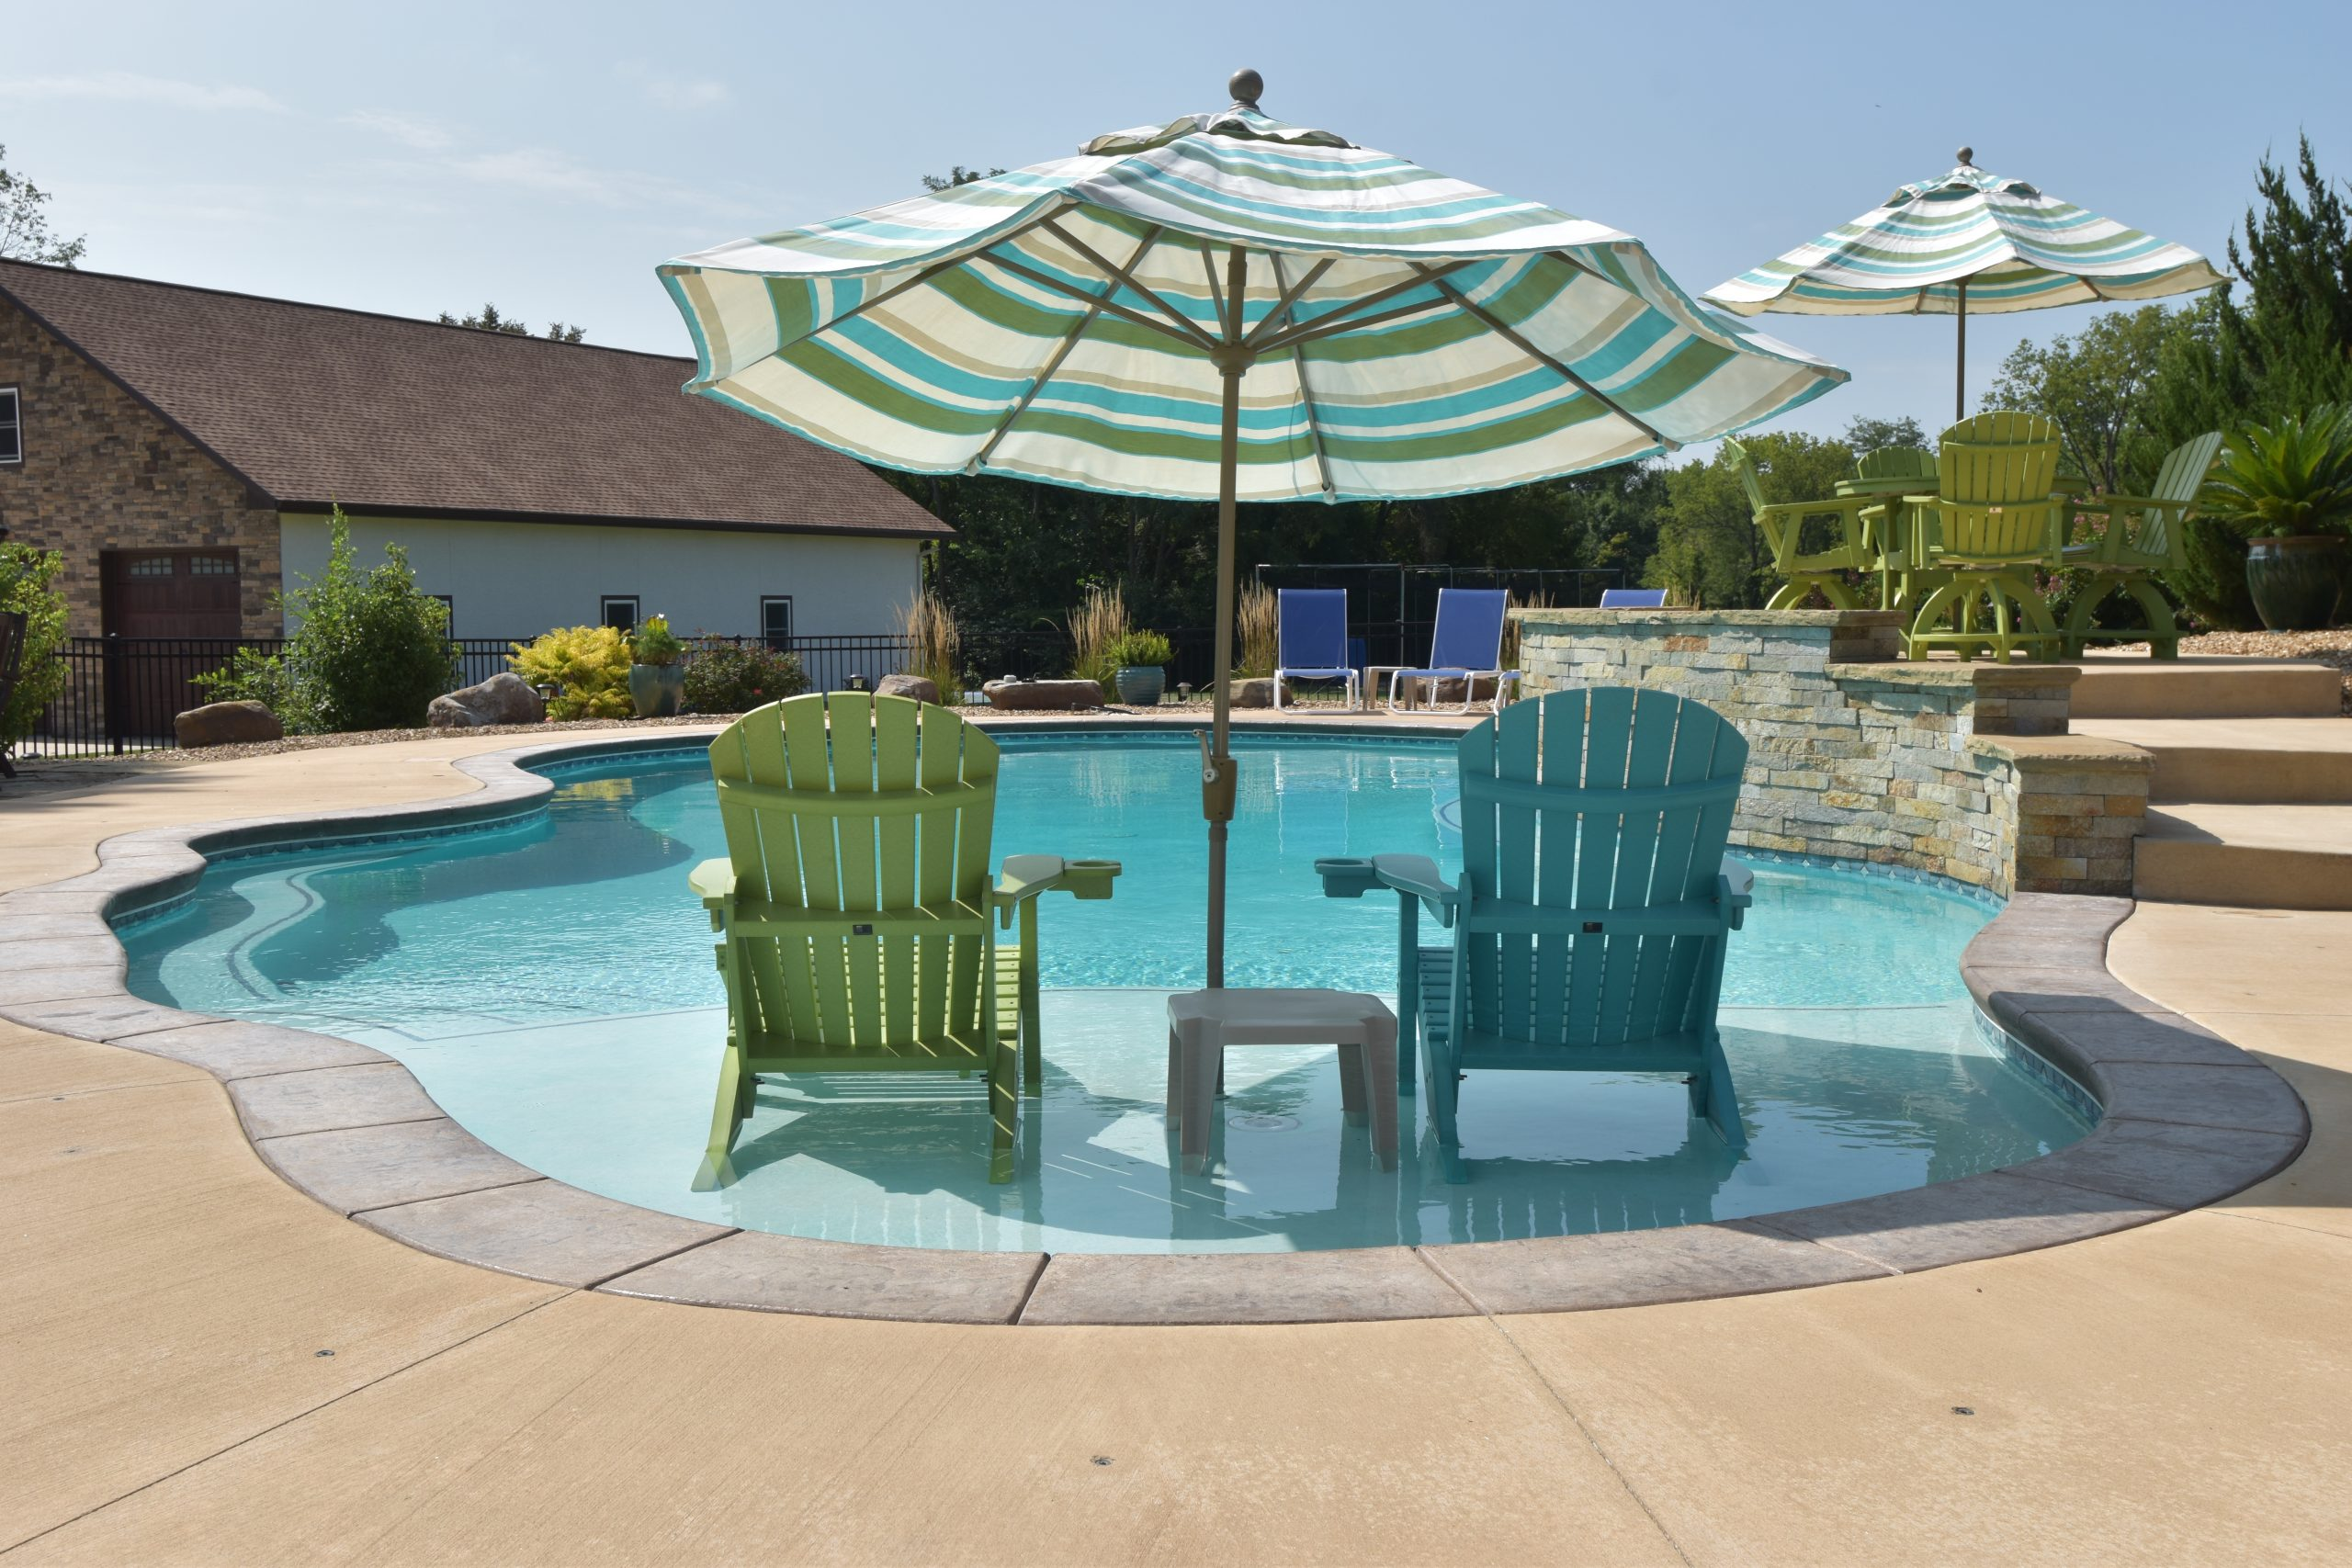 Oasis Pools & Spas pool with chairs